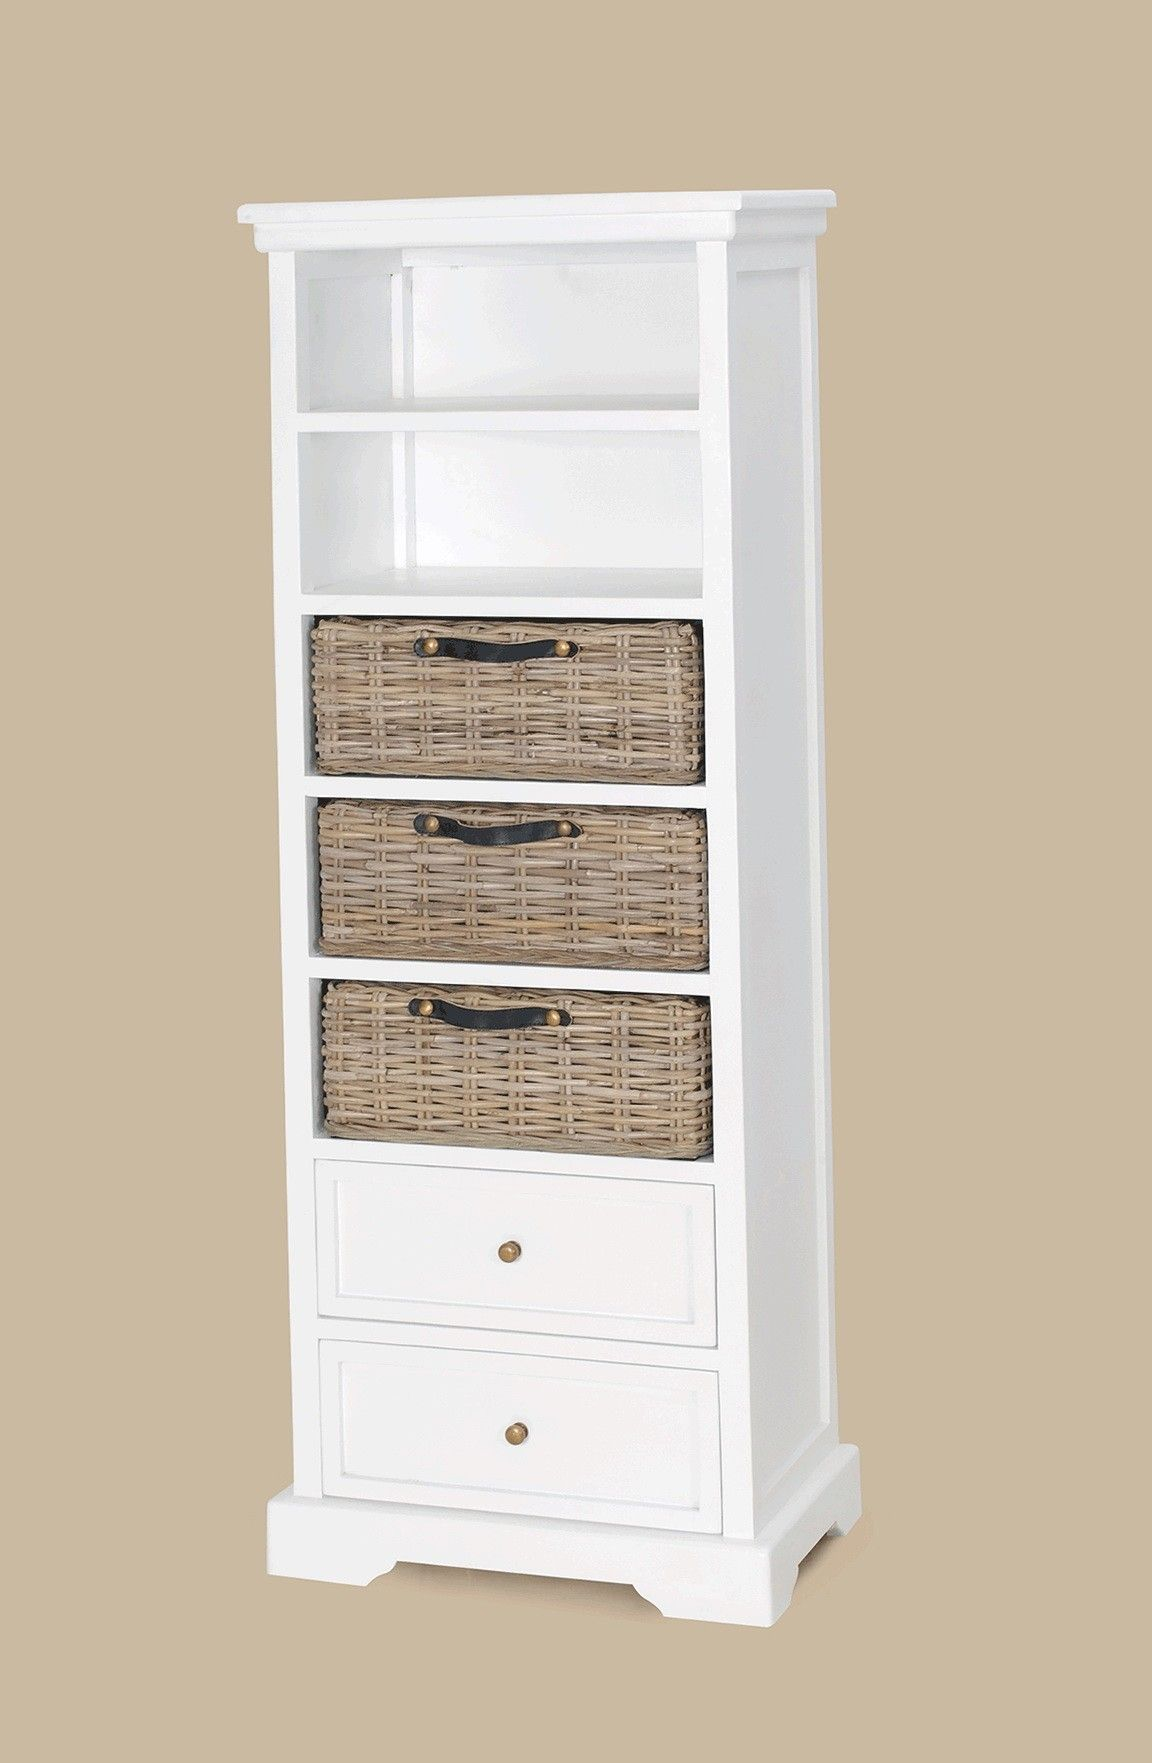 furniture tall white wooden bookcase with double racks and three brown rattan storages also. Black Bedroom Furniture Sets. Home Design Ideas